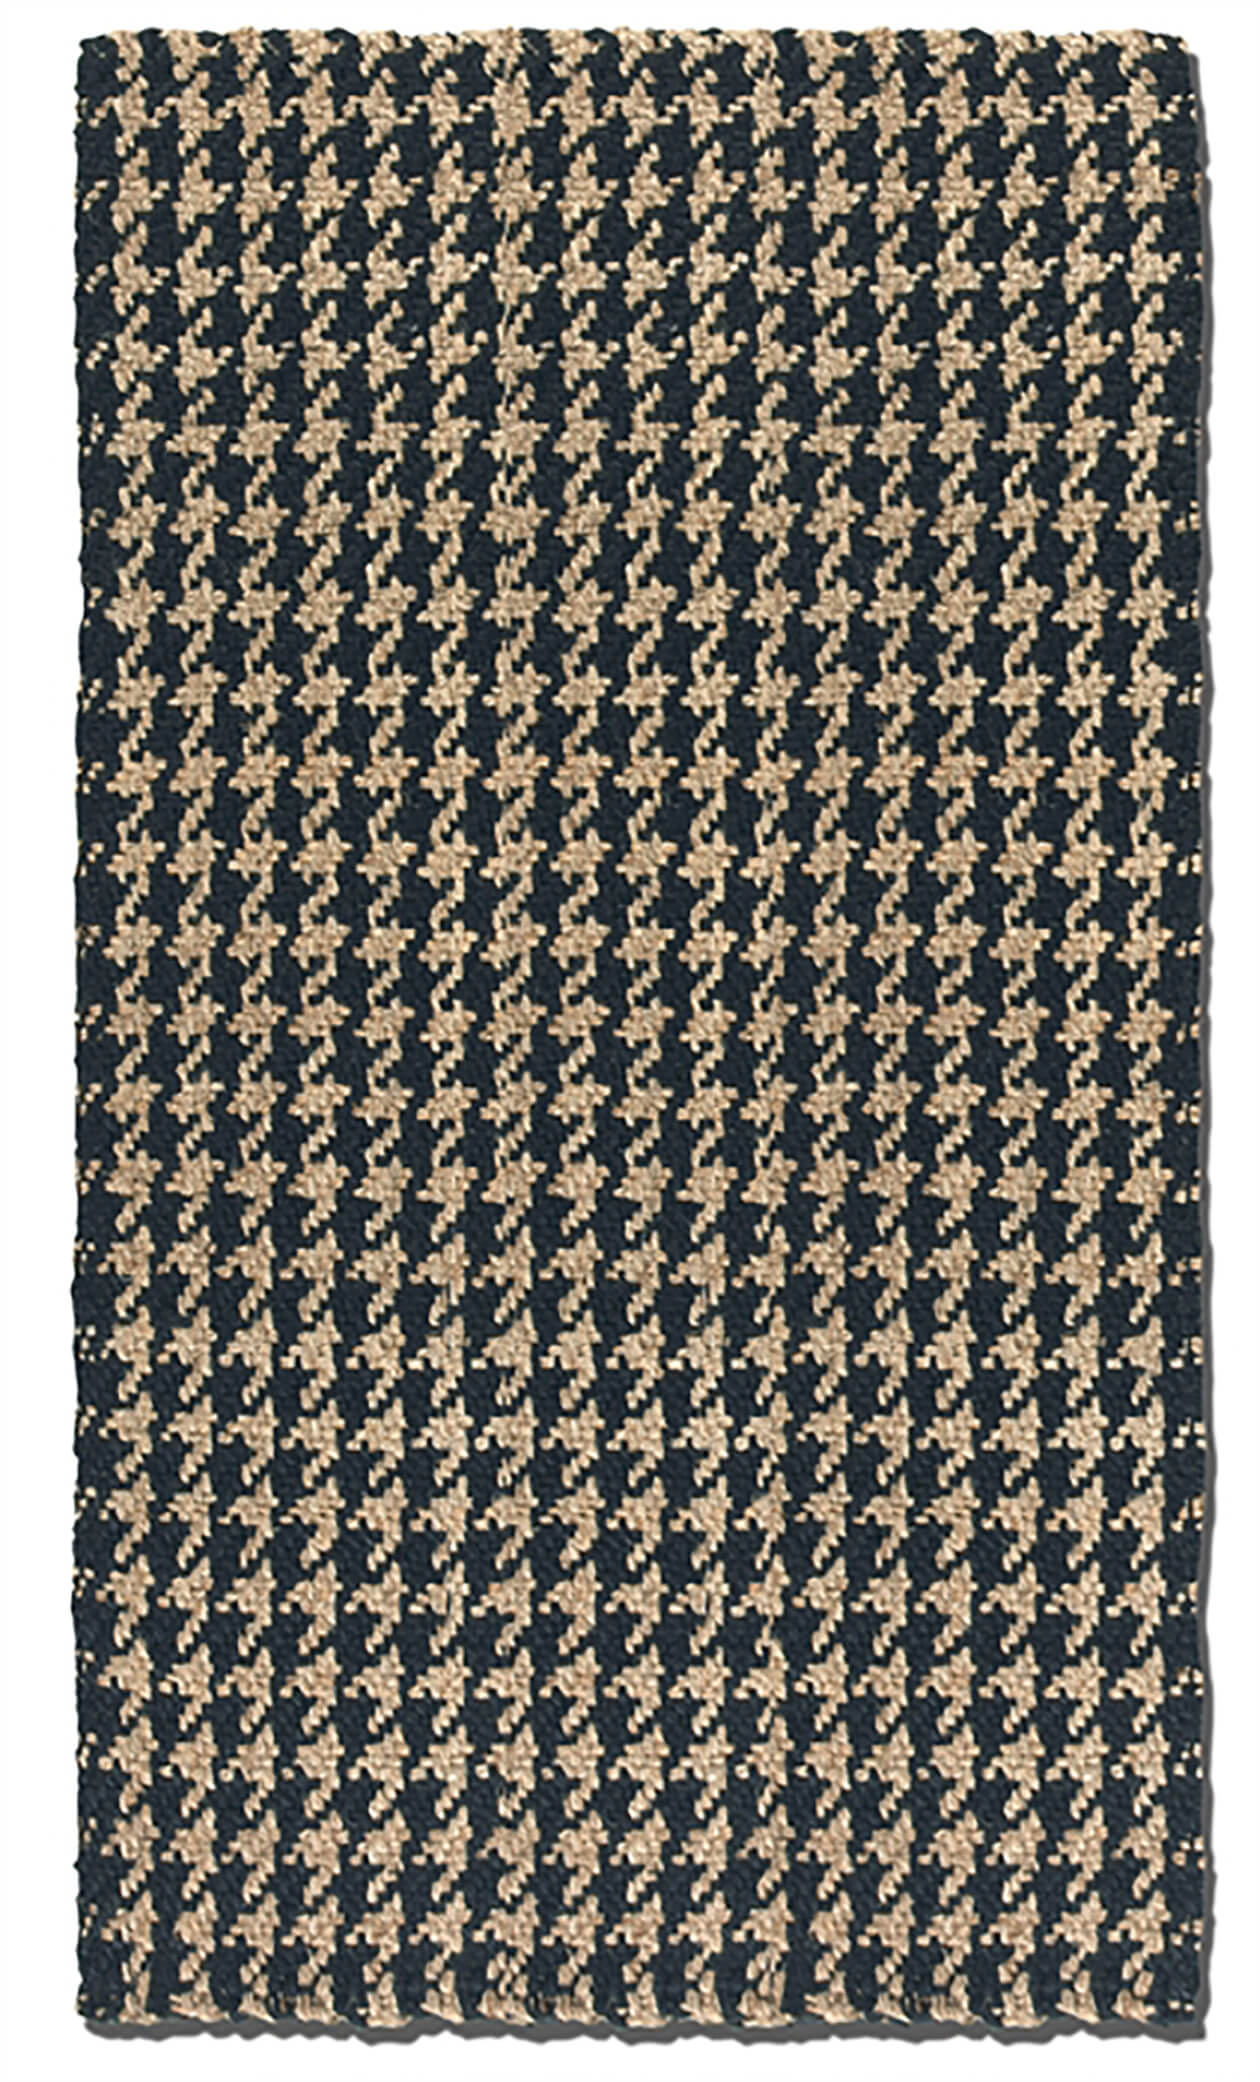 8x10 Hounds-tooth Patterned Rug